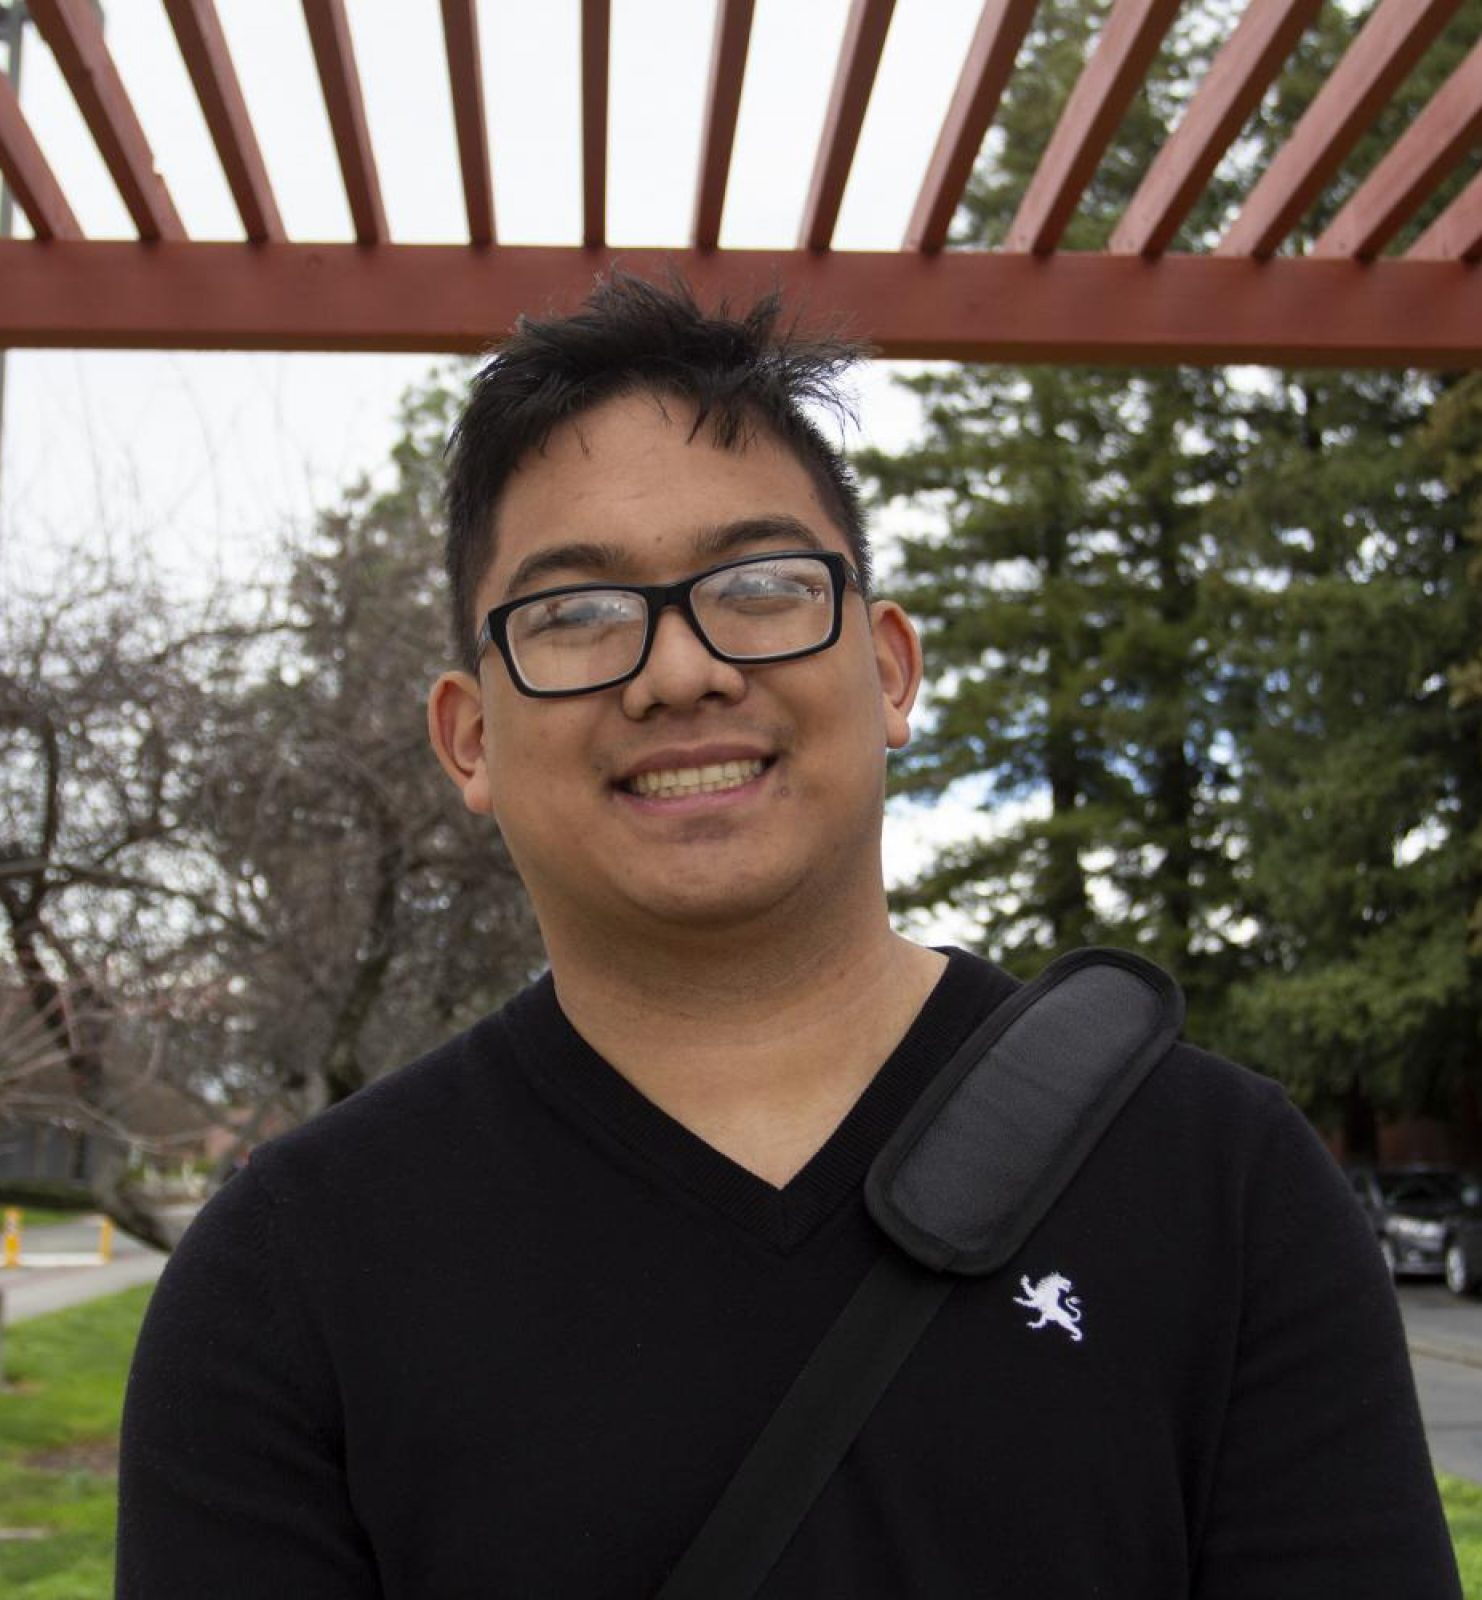 """""""The drive to learn new things in my classes because the new classes I'm taking are pretty interesting and I actually enjoy it. My morning routine usually consists of getting up, making coffee, trying to make breakfast and getting here right away to beat parking."""" – Austin Aninzo 